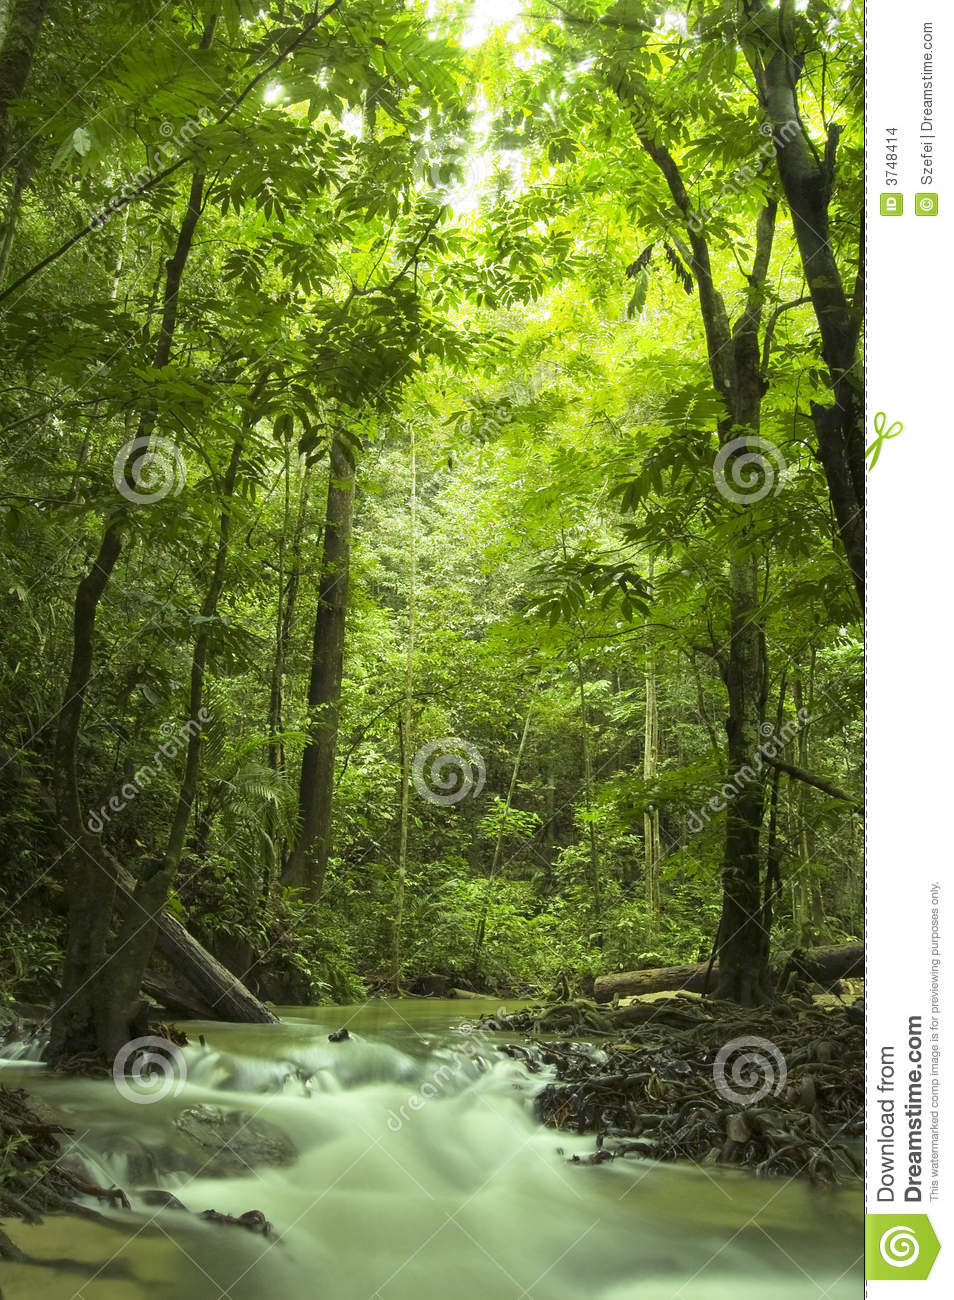 Drop Of Water Falling From A Leaf Wallpaper Green Forest And Stream Stock Images Image 3748414